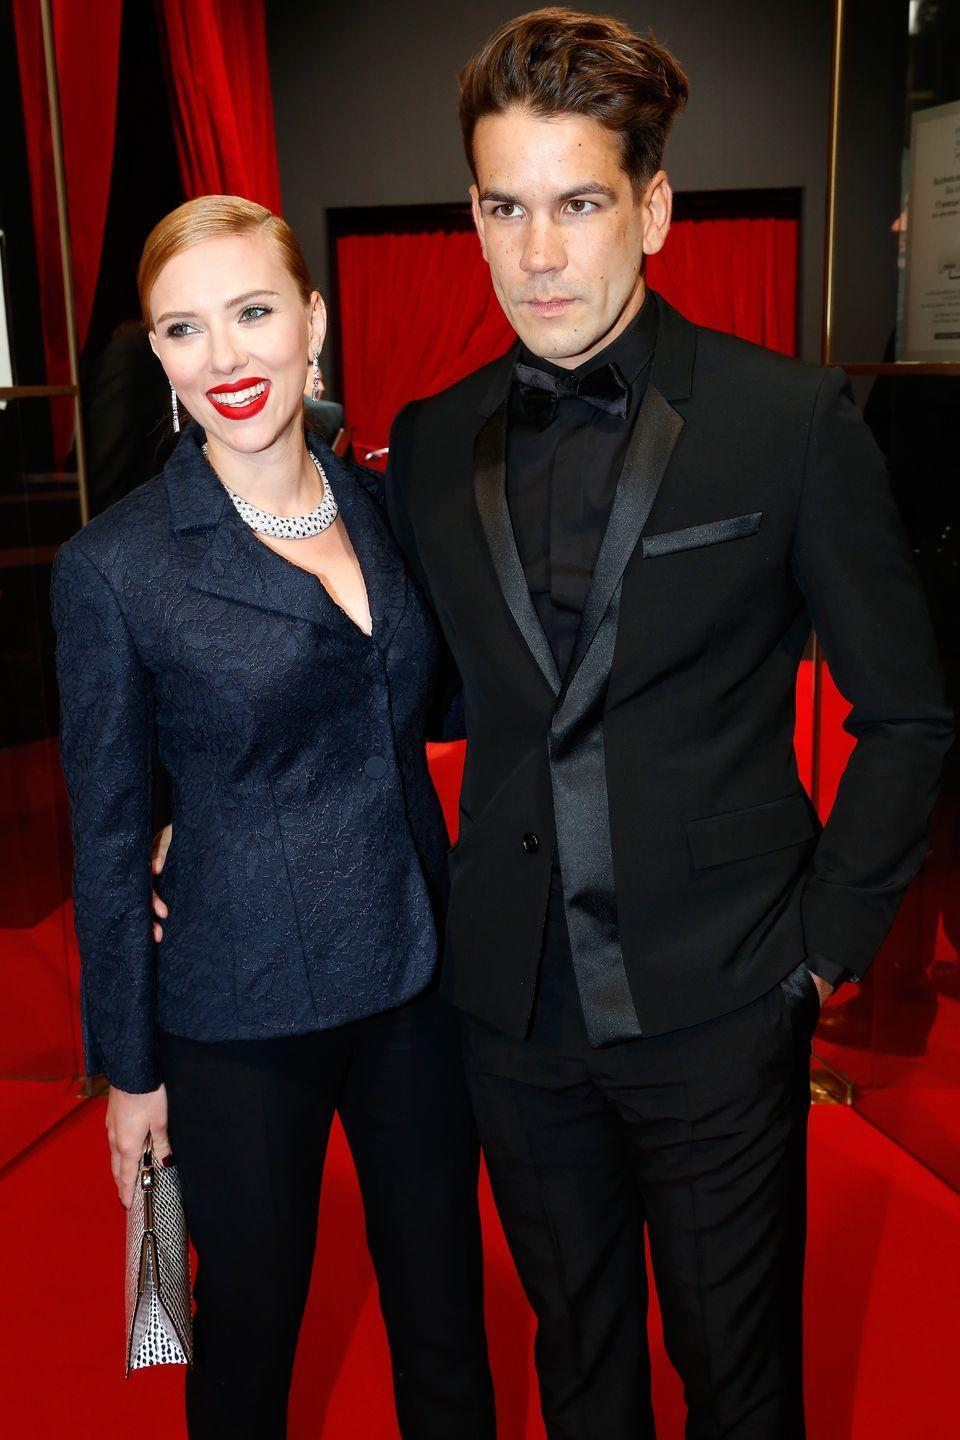 """<p>It seems like Scarlett Johansson is a fan of eloping. Much like her first wedding to Ryan Reynolds, the actress <a href=""""https://people.com/movies/scarlett-johansson-romain-dauriac-split/"""" rel=""""nofollow noopener"""" target=""""_blank"""" data-ylk=""""slk:chose to elope in 2014"""" class=""""link rapid-noclick-resp"""">chose to elope in 2014</a> with French journalist Romain Dauriac. They had recently welcomed their daughter, Rose Dorothy, when they wed in secret.</p>"""